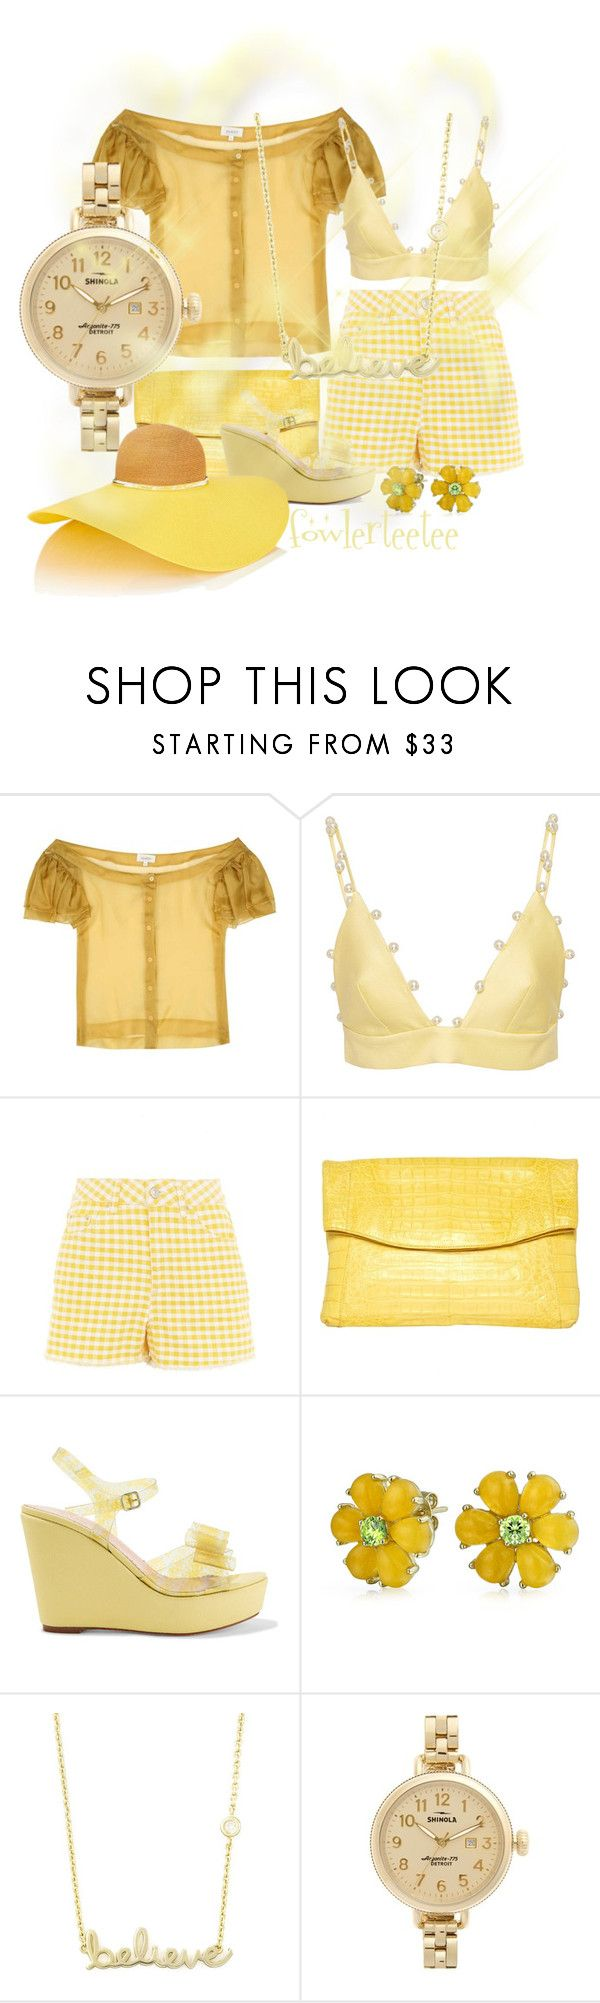 """Yellow Outfit"" by fowlerteetee ❤ liked on Polyvore featuring Isa Arfen, Leal Daccarett, Topshop, Nancy Gonzalez, RED Valentino, Bling Jewelry, Sydney Evan, Shinola and Eugenia Kim"